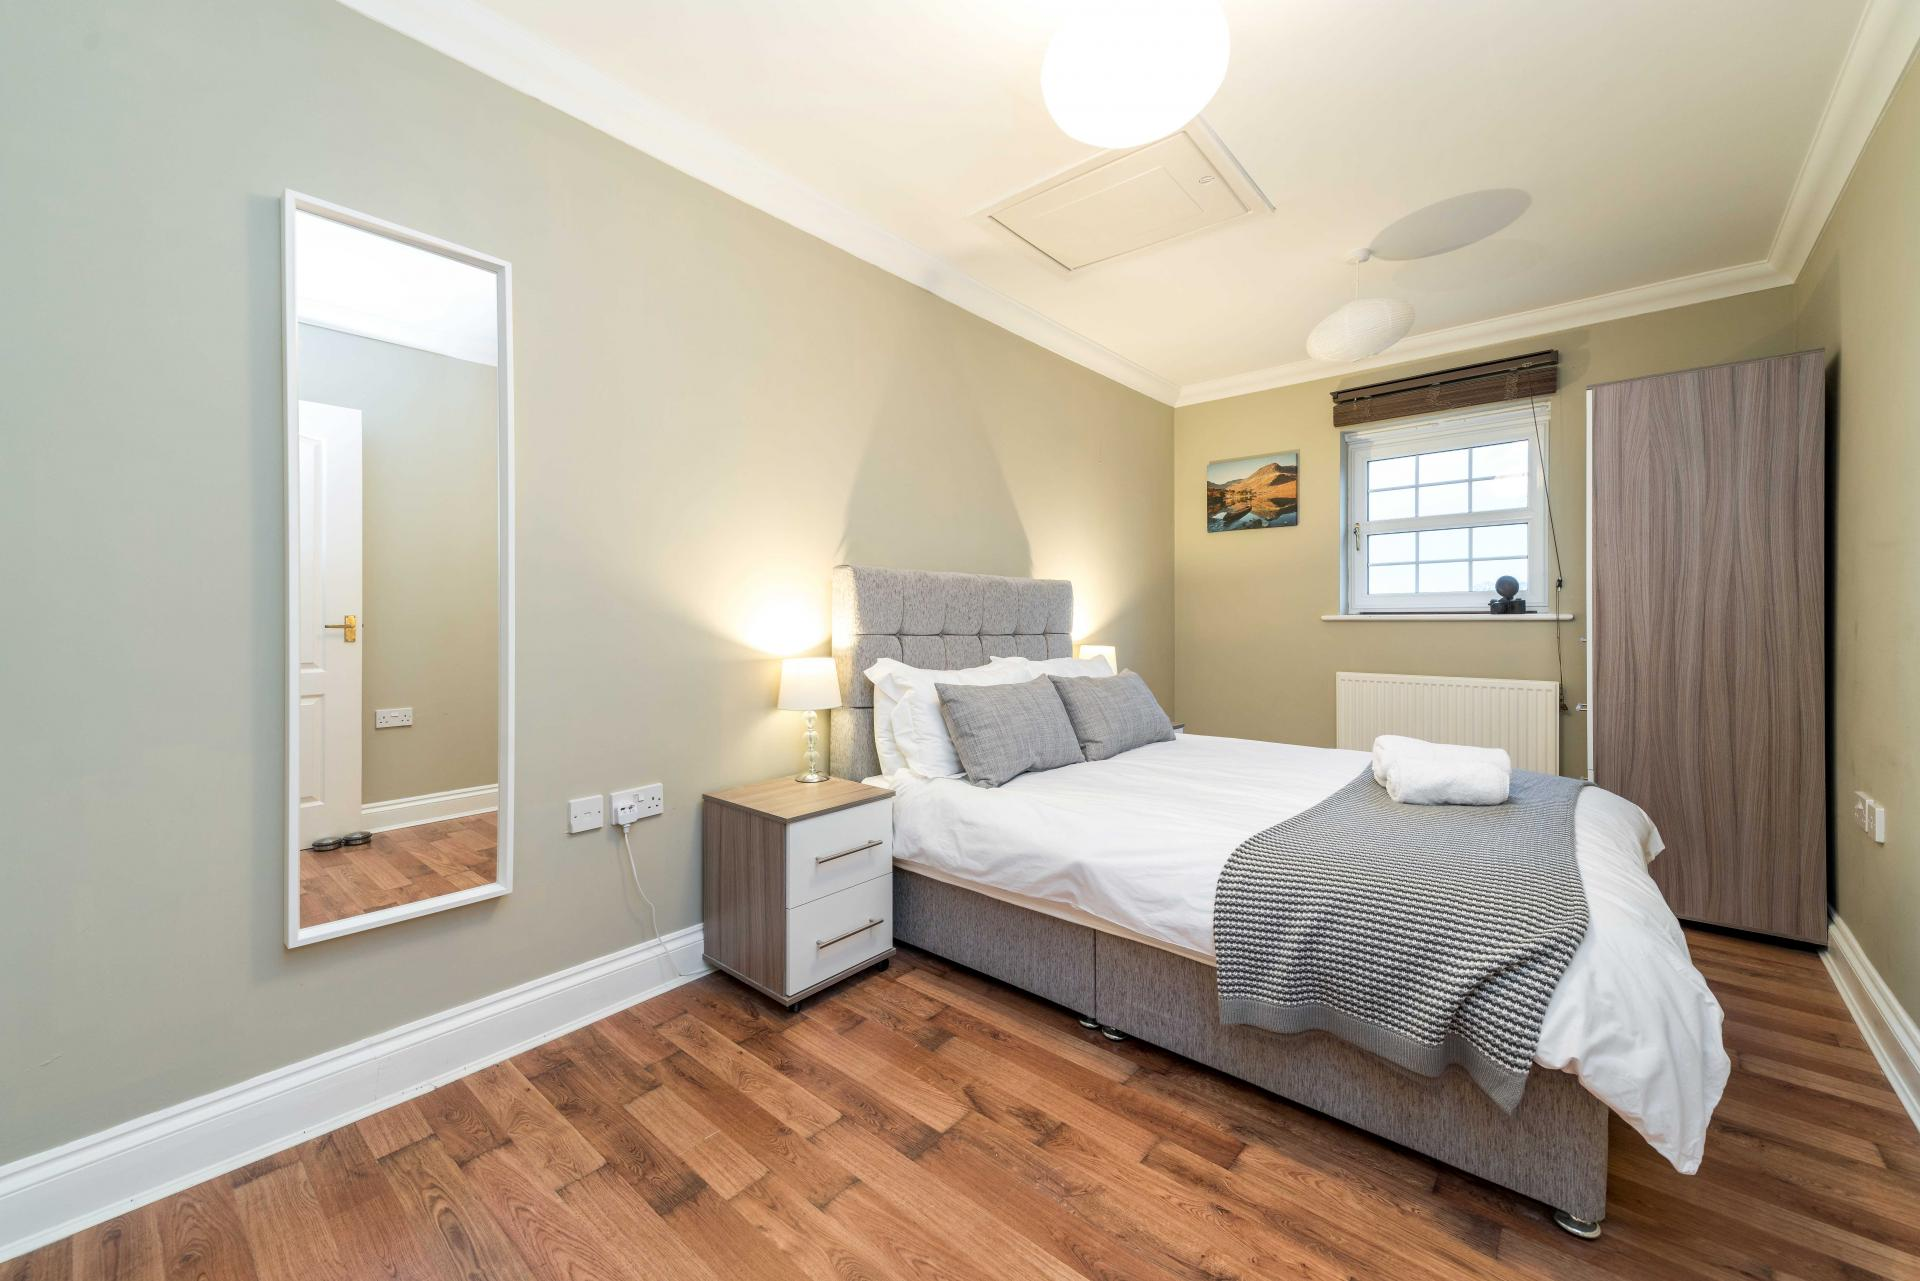 Bedroom 2 at Stowfield House